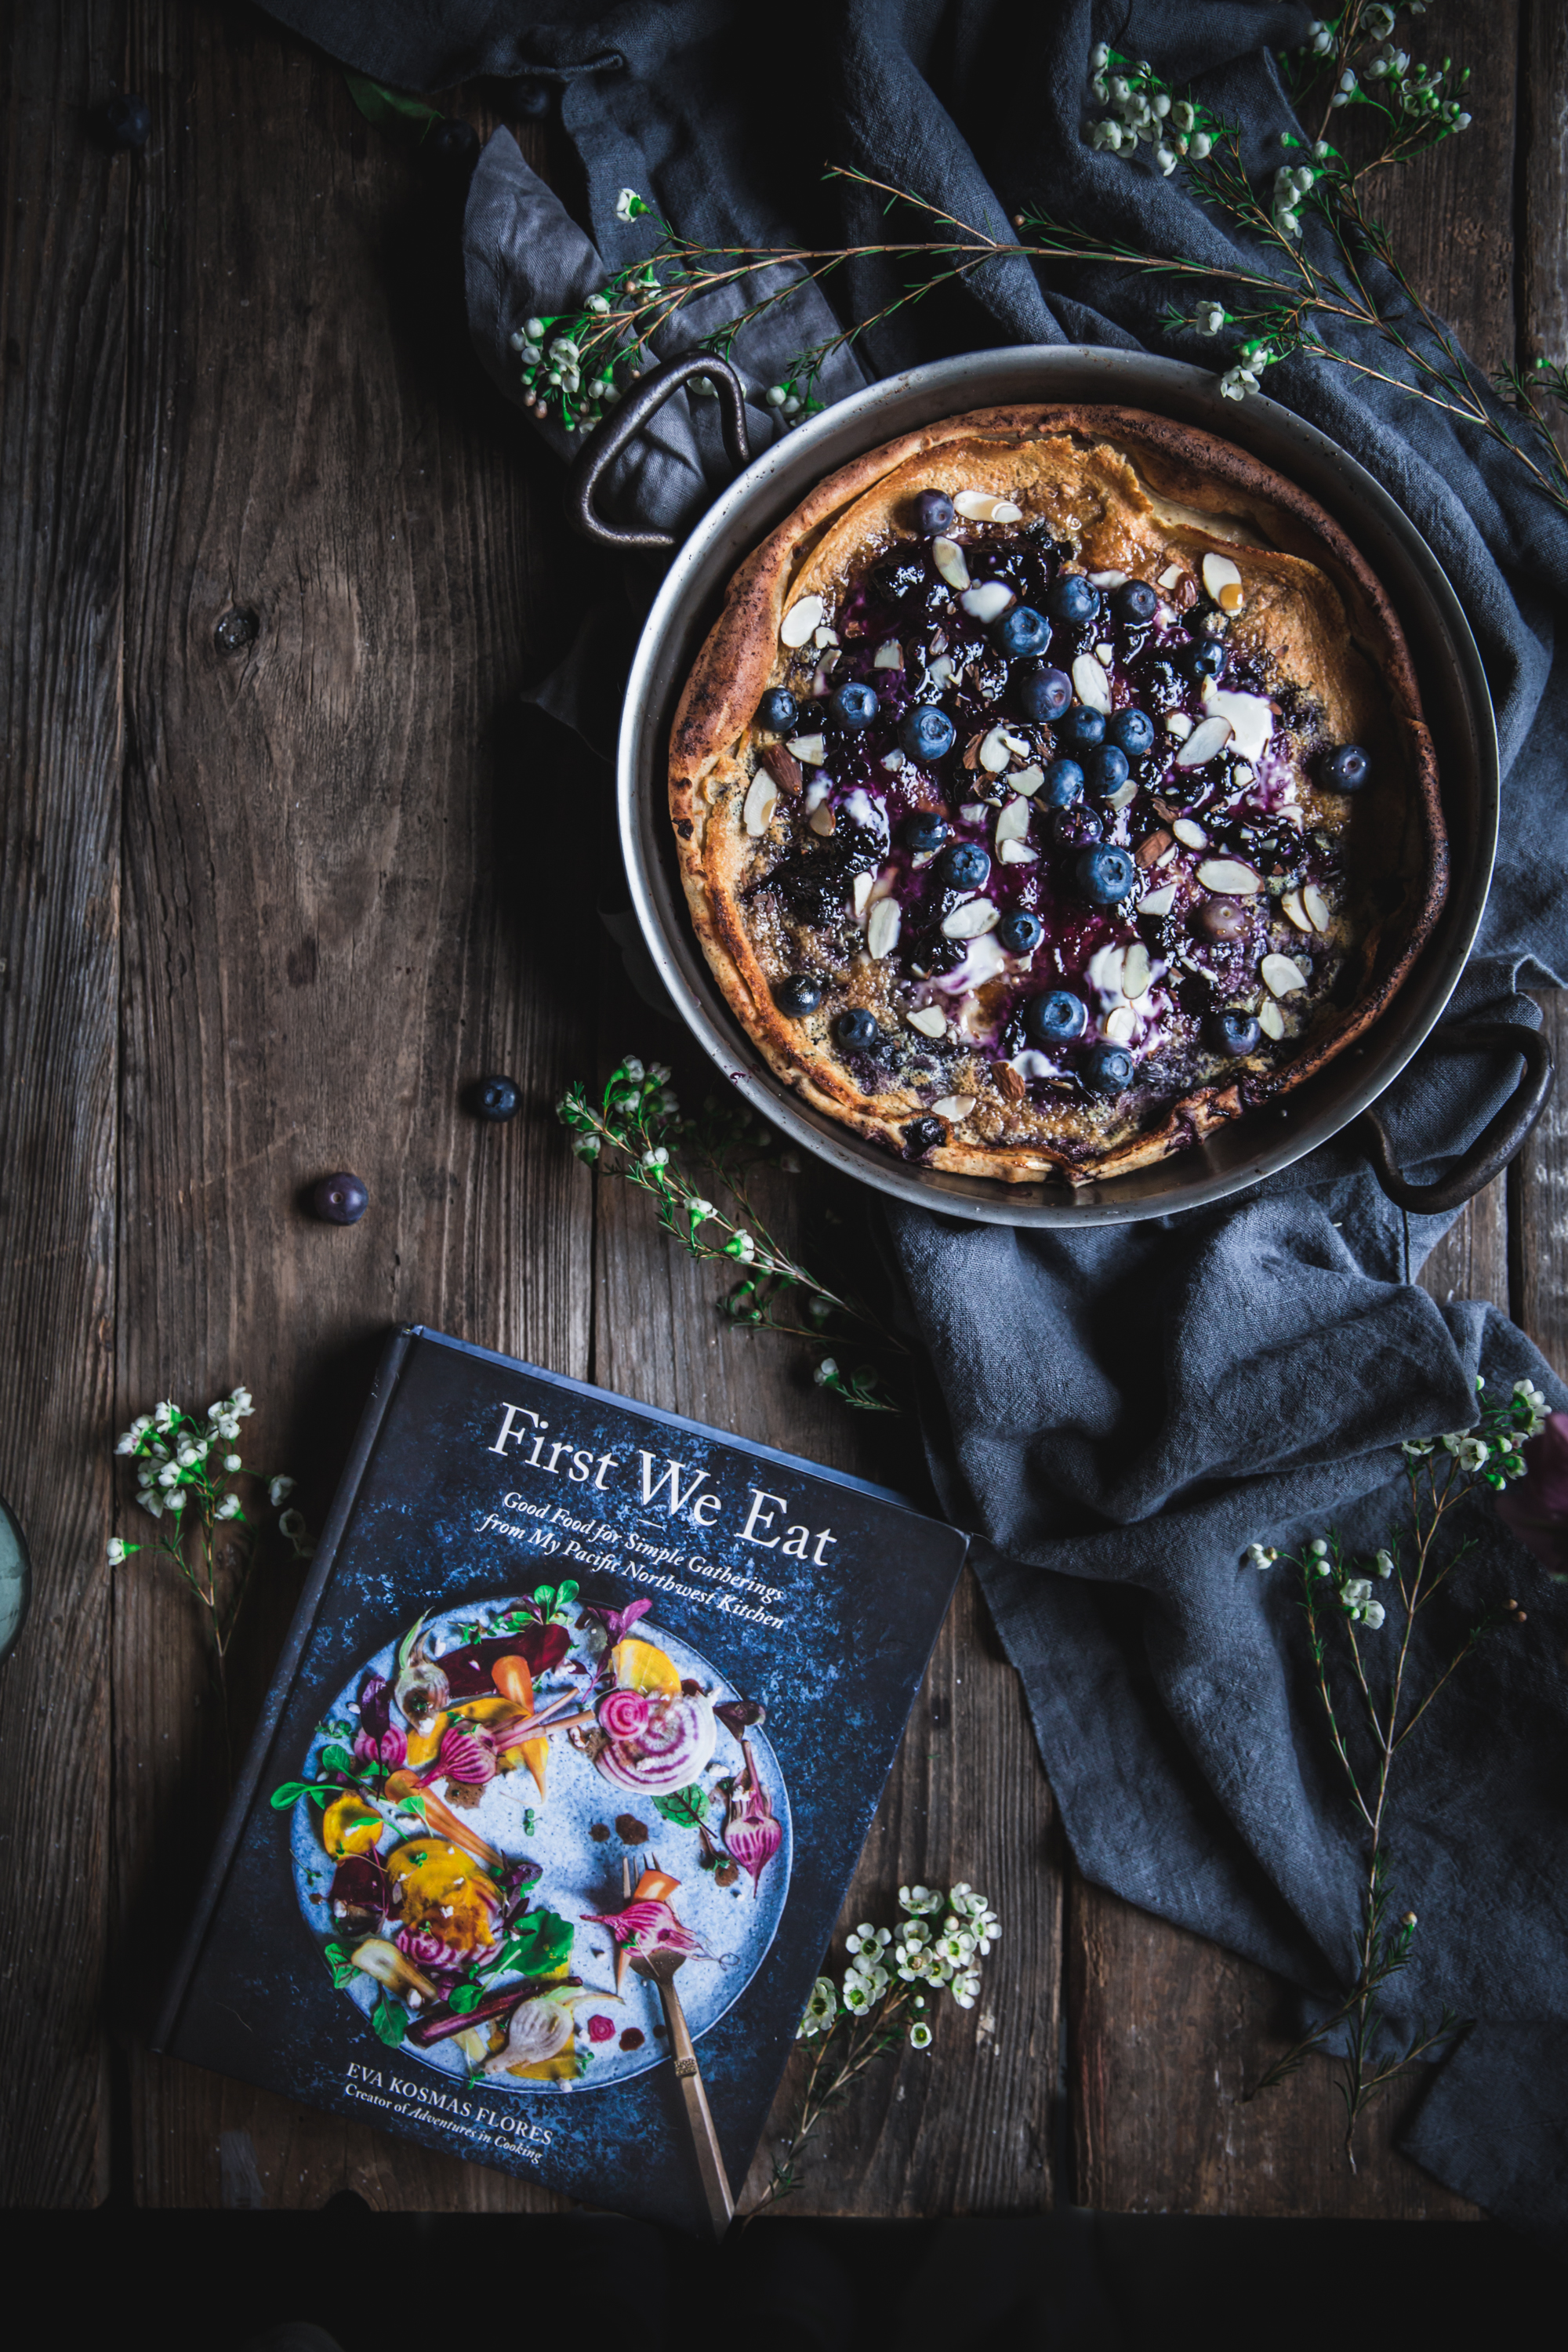 First we eat cookbook a blueberry dutch baby adventures in cooking blueberry dutch baby from the cookbook first we eat by eva kosmas flores forumfinder Gallery